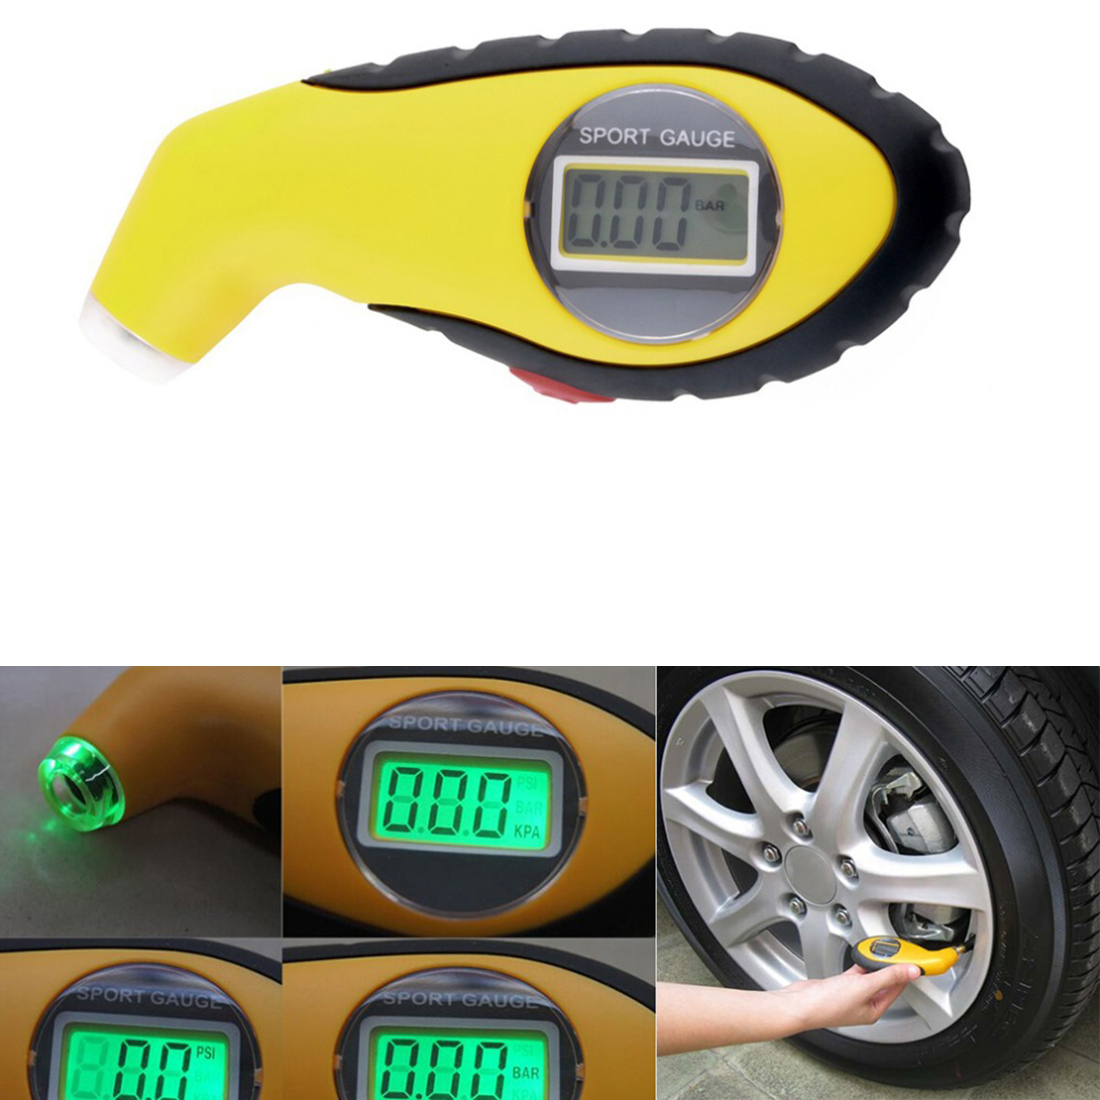 1pcs New PSI Digital Tire Tyre Air Pressure Gauge Tester Tool For Auto Car Motorcycle PSI  KPA BAR